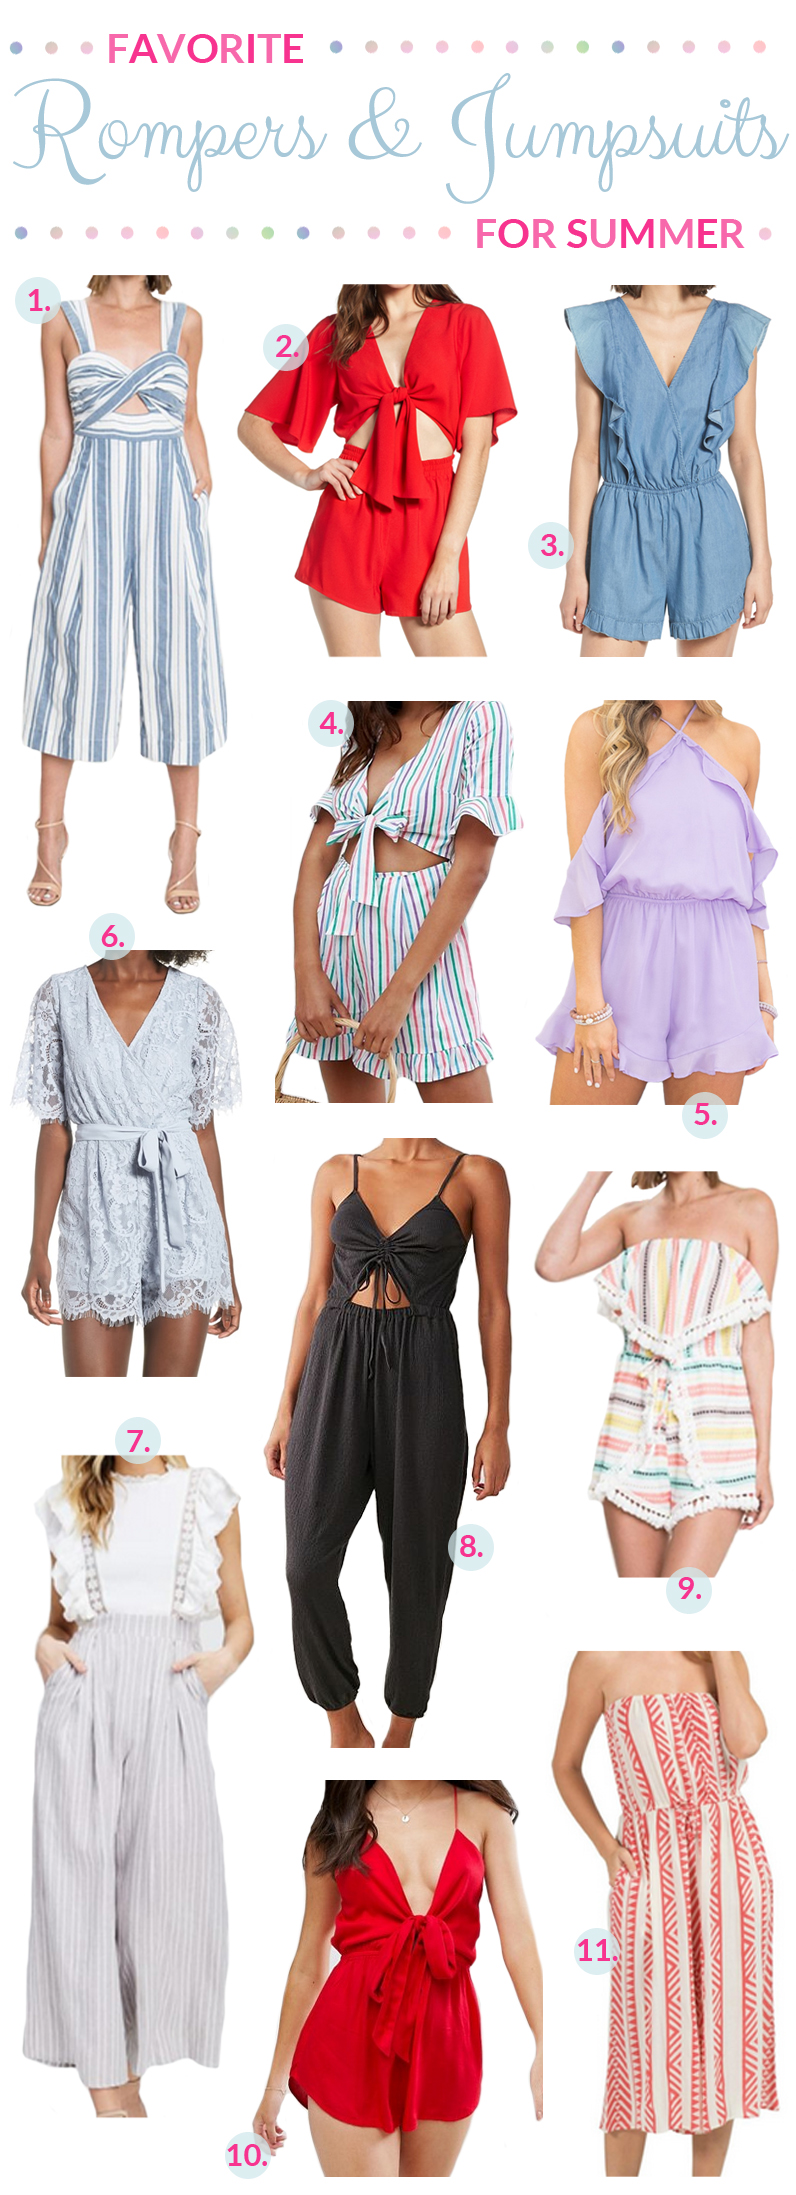 My Favorite Summer Rompers & Jumpsuits featured by popular fashion blogger Walking in Memphis in High Heels